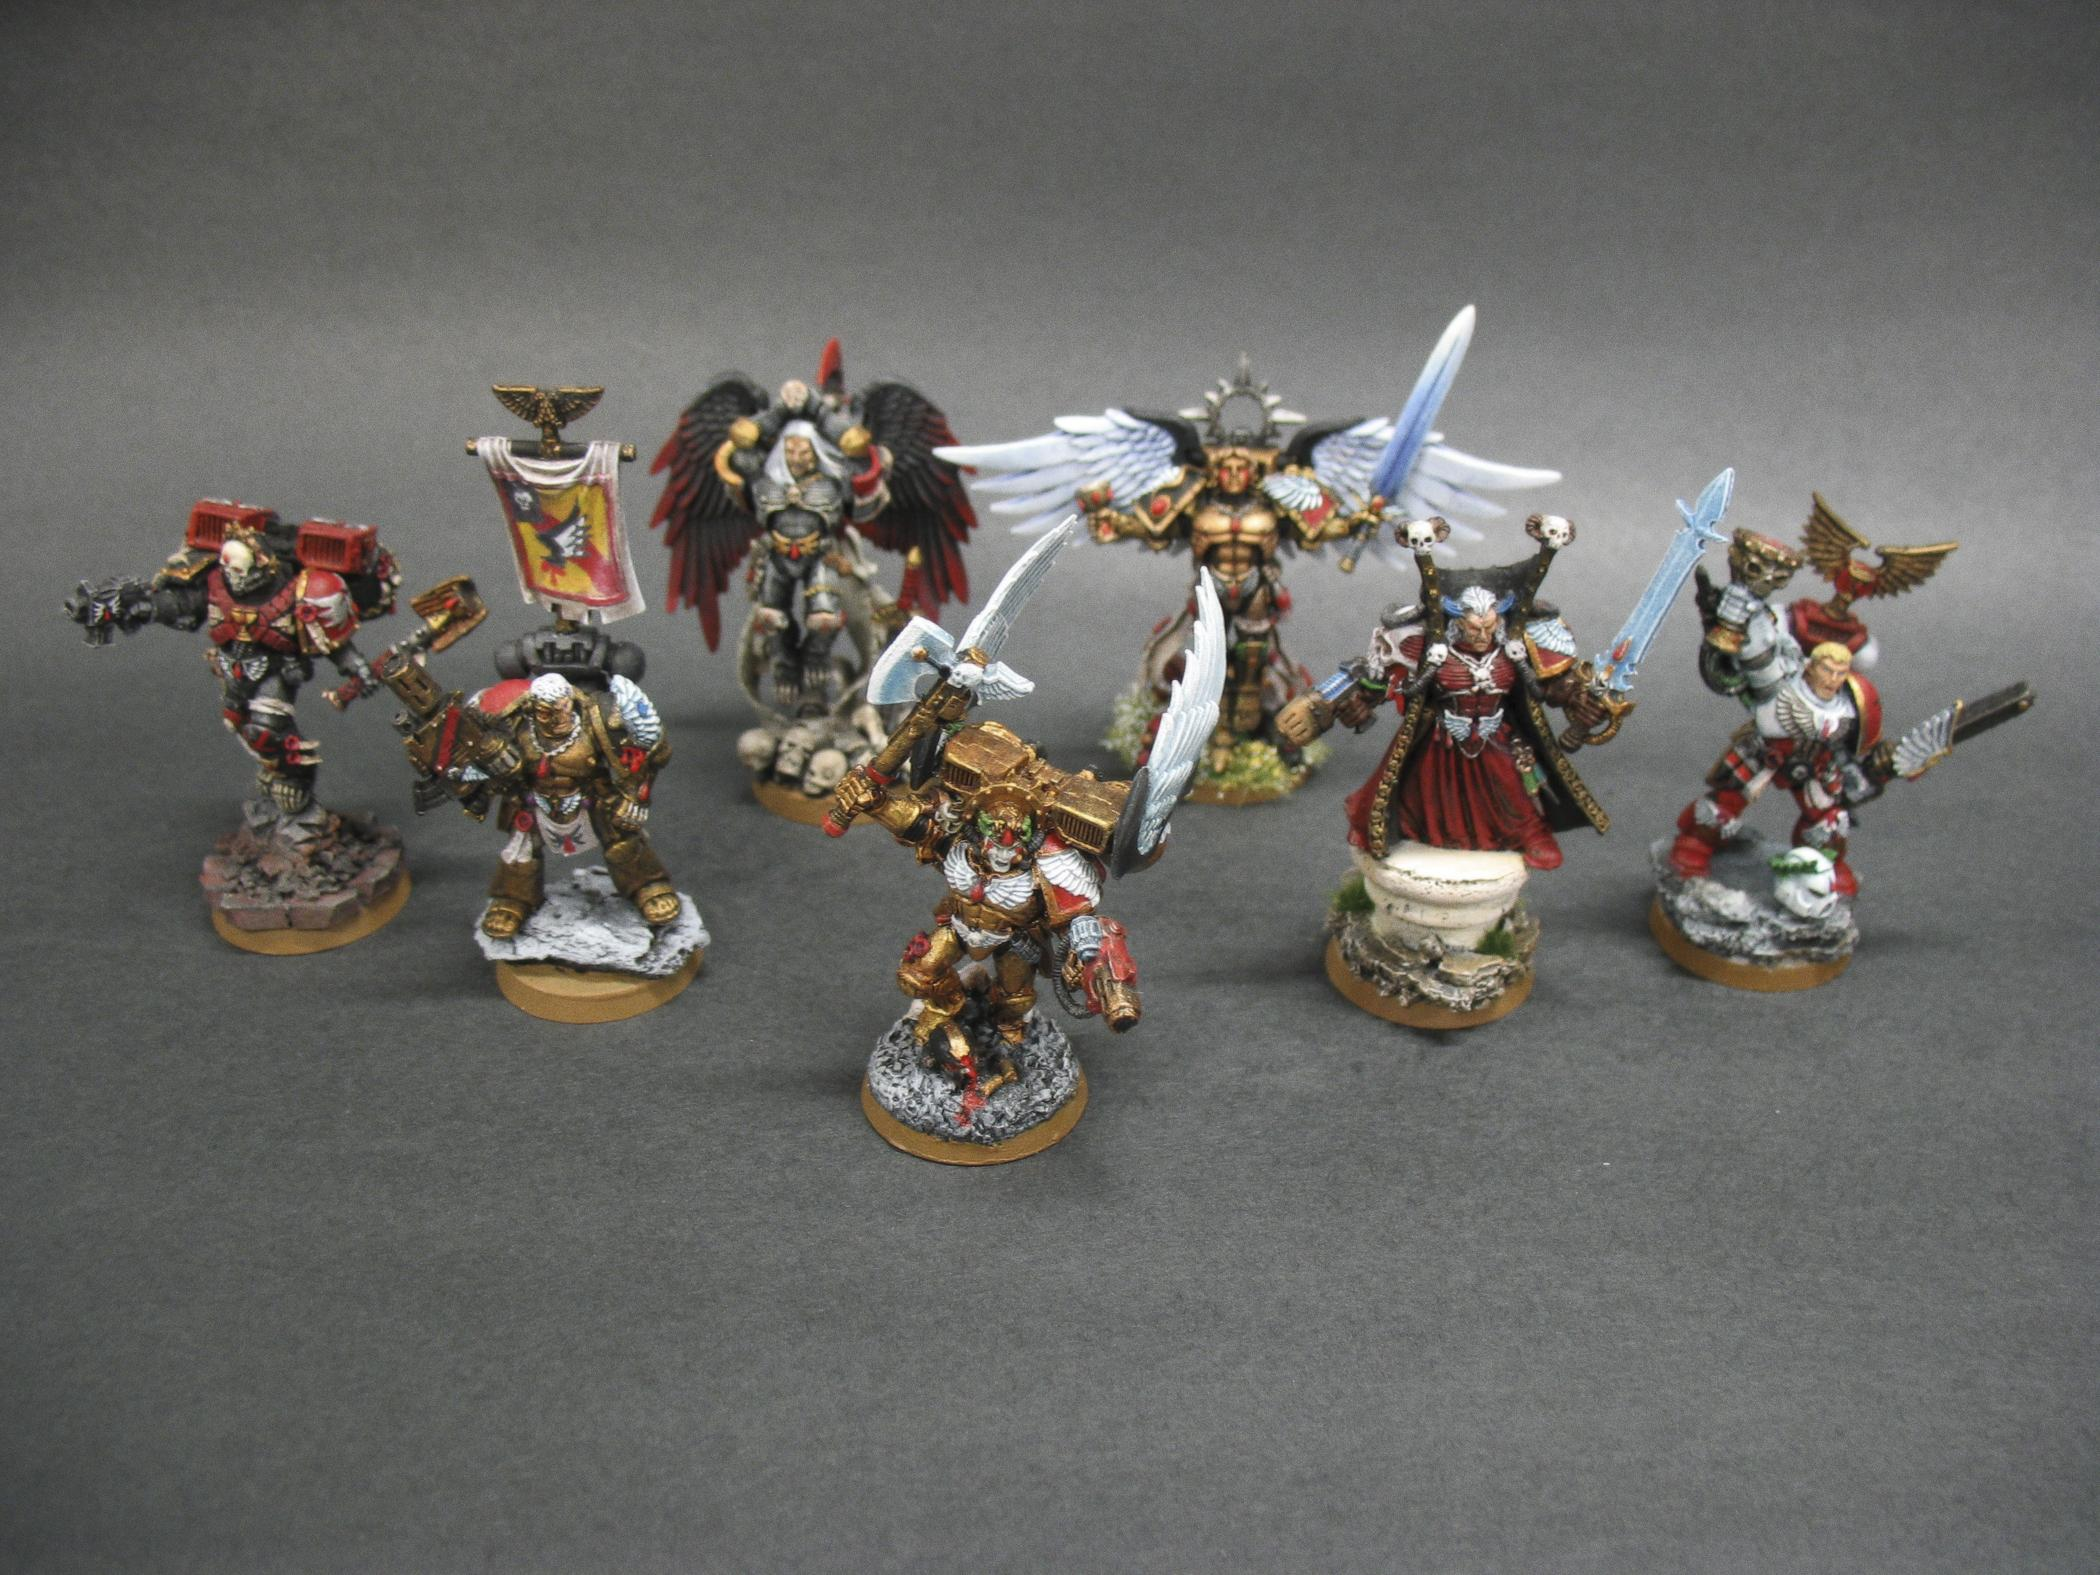 Astorath, Blood Angels, Dante, Headquarters, Lemartes, Mephiston, Sanguinor, Tycho